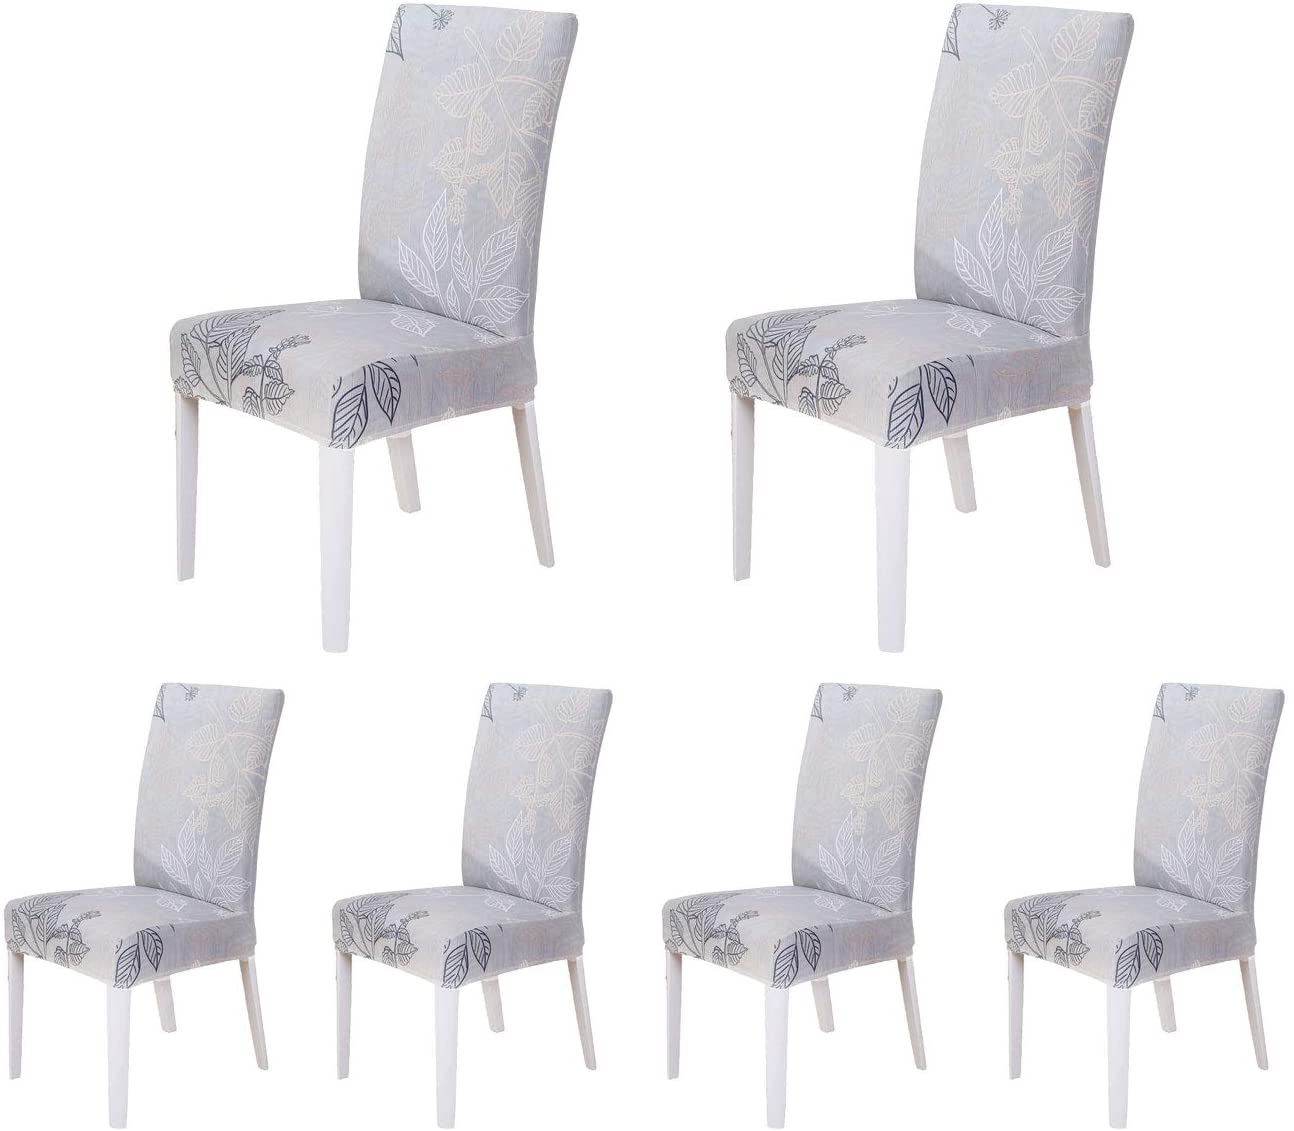 SoulFeel Set of 6 Stretch Chair Covers for Dining Room, Removable Fitted Seat Slipcovers Protector (Style 61, Scene of The Autumn)